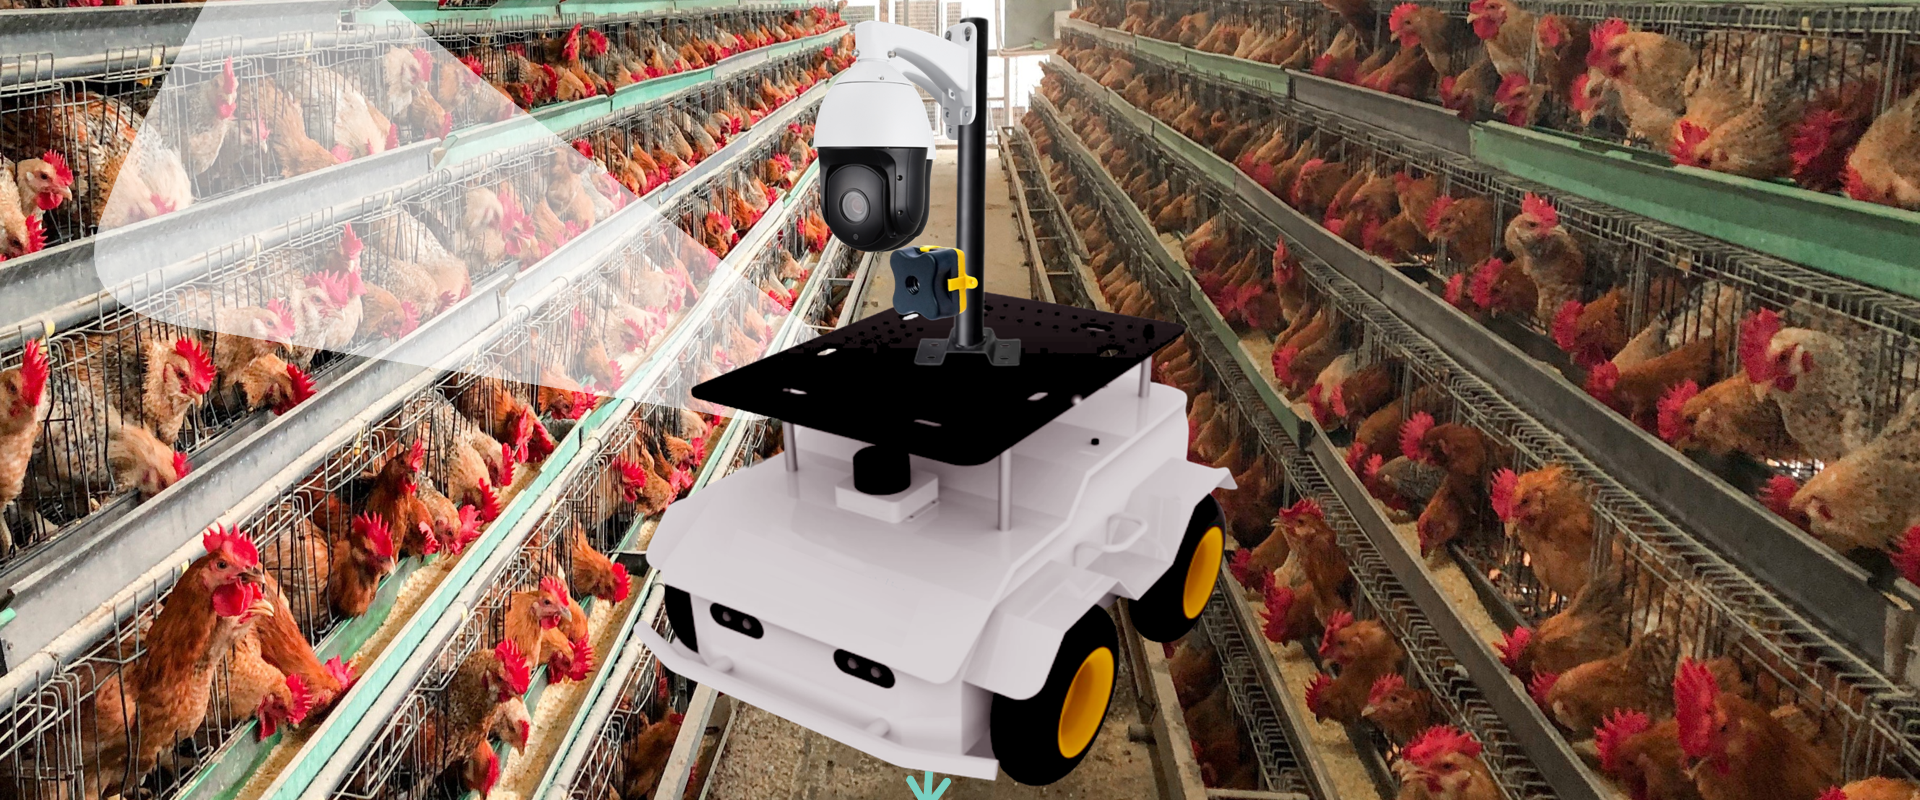 Robotics For Manufacturing and Agriculture